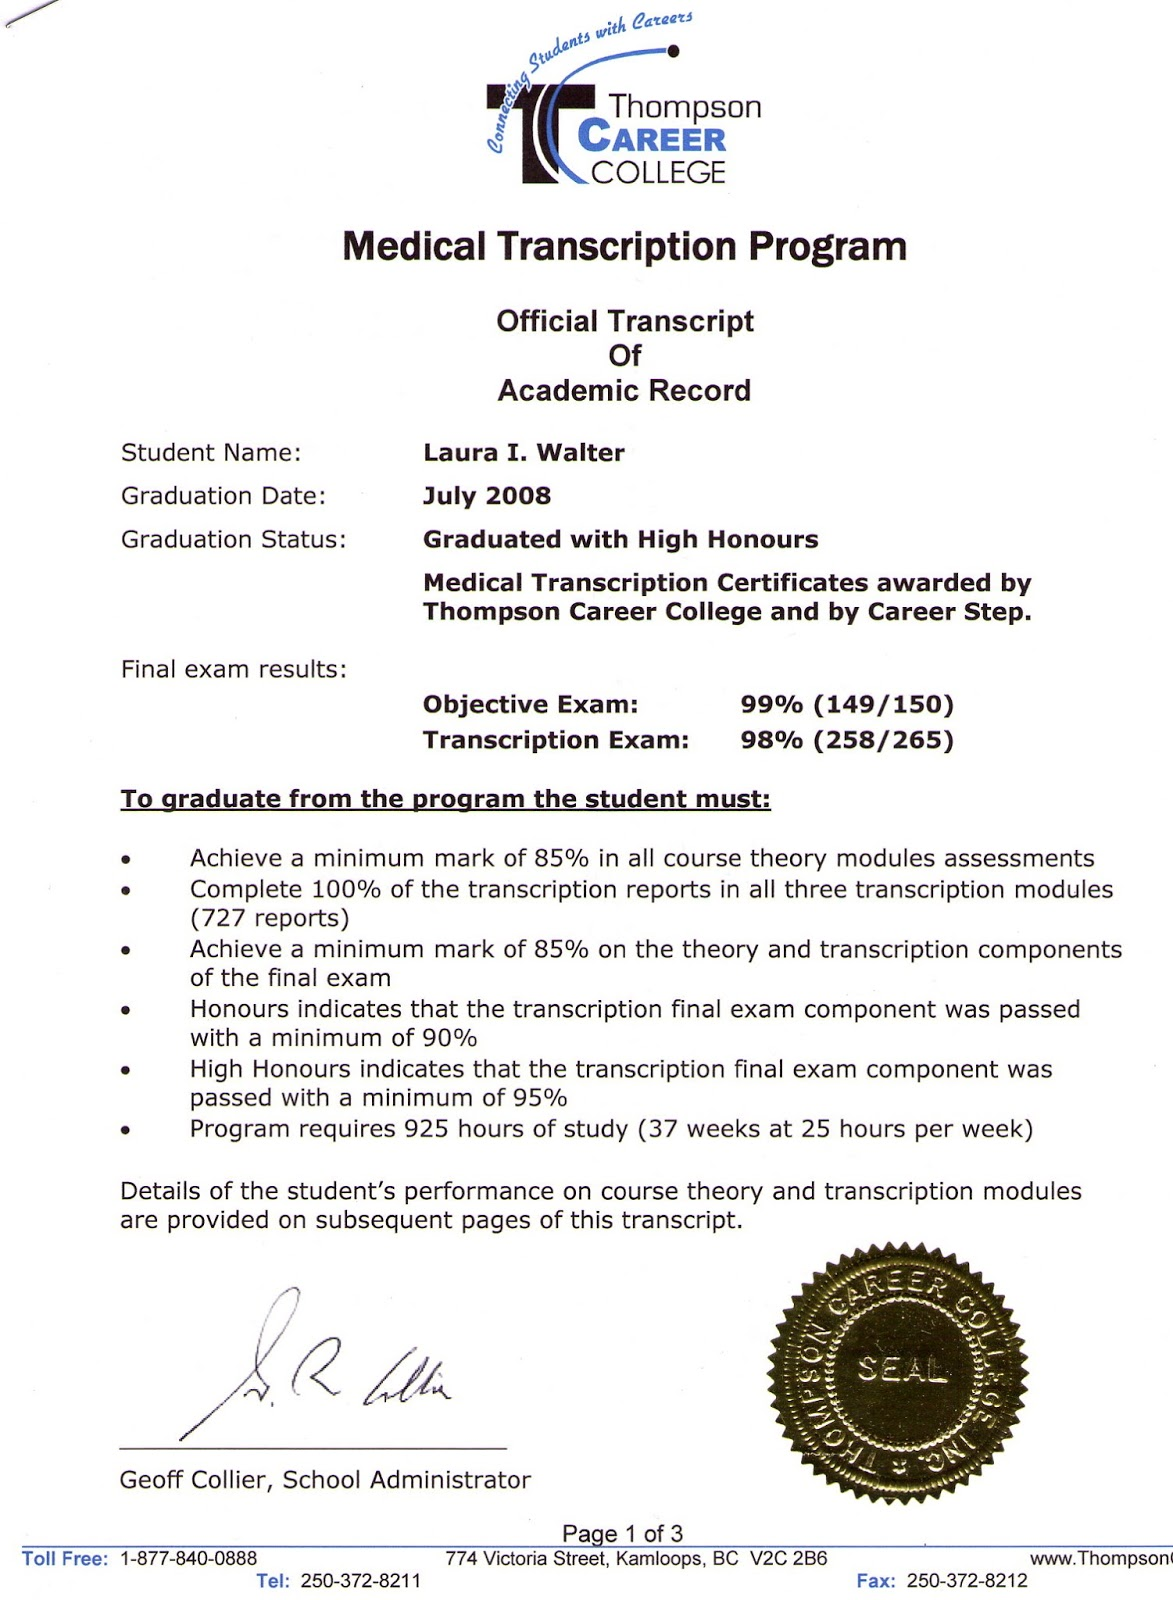 Transcriptionist Resume Medical Transcription Resumes Exles  Medical Transcriptionist Resume